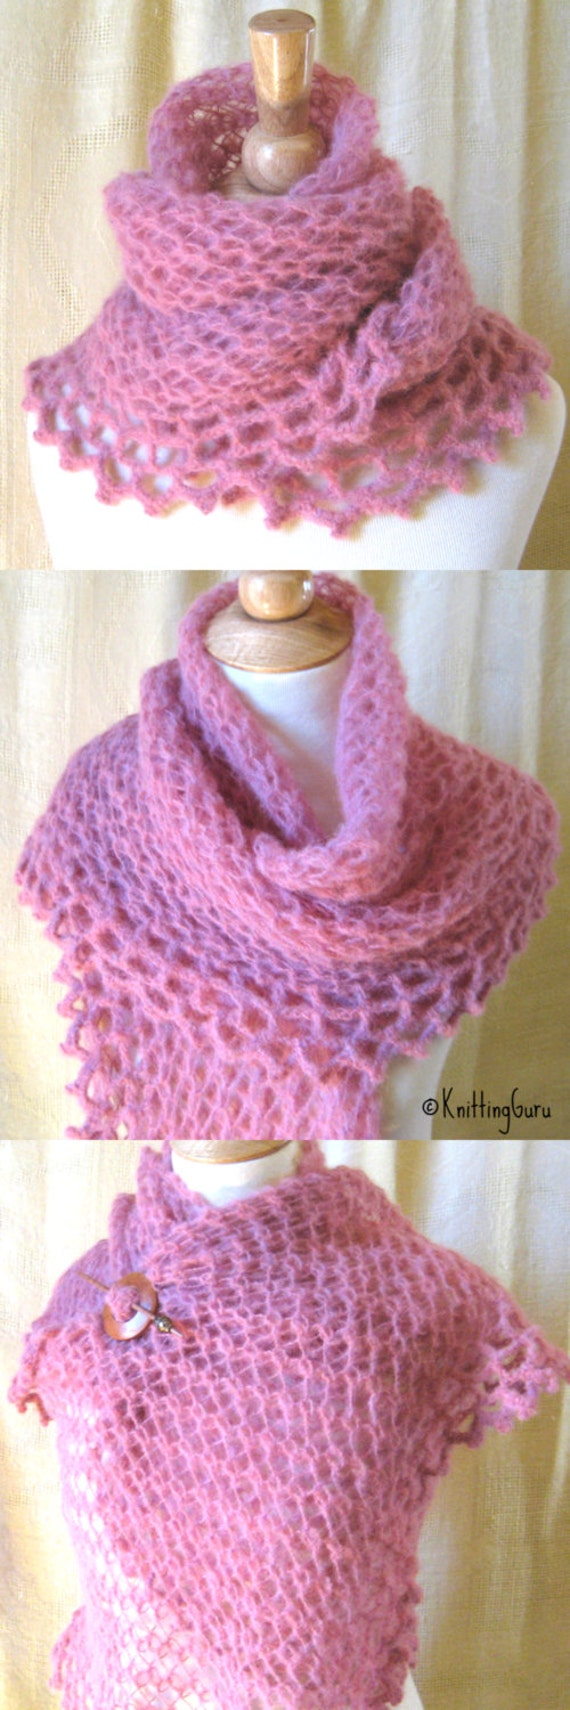 Hand Knitted Alpaca Shawl Wrap with Crocheted Lace Edge - Whispery Soft Pink